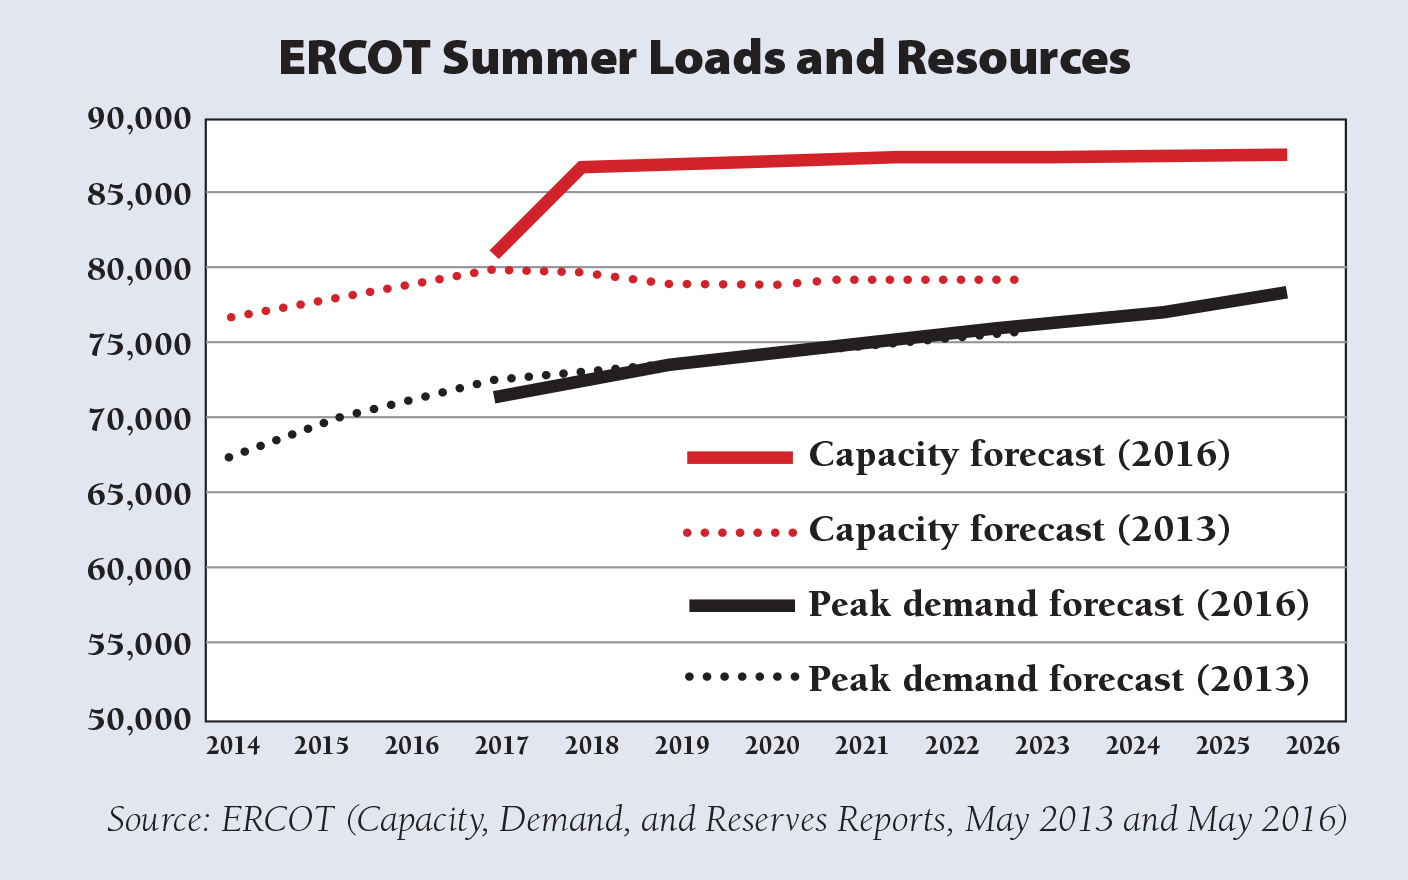 RAP Hogan Figure 3 ERCOT Summer Loads